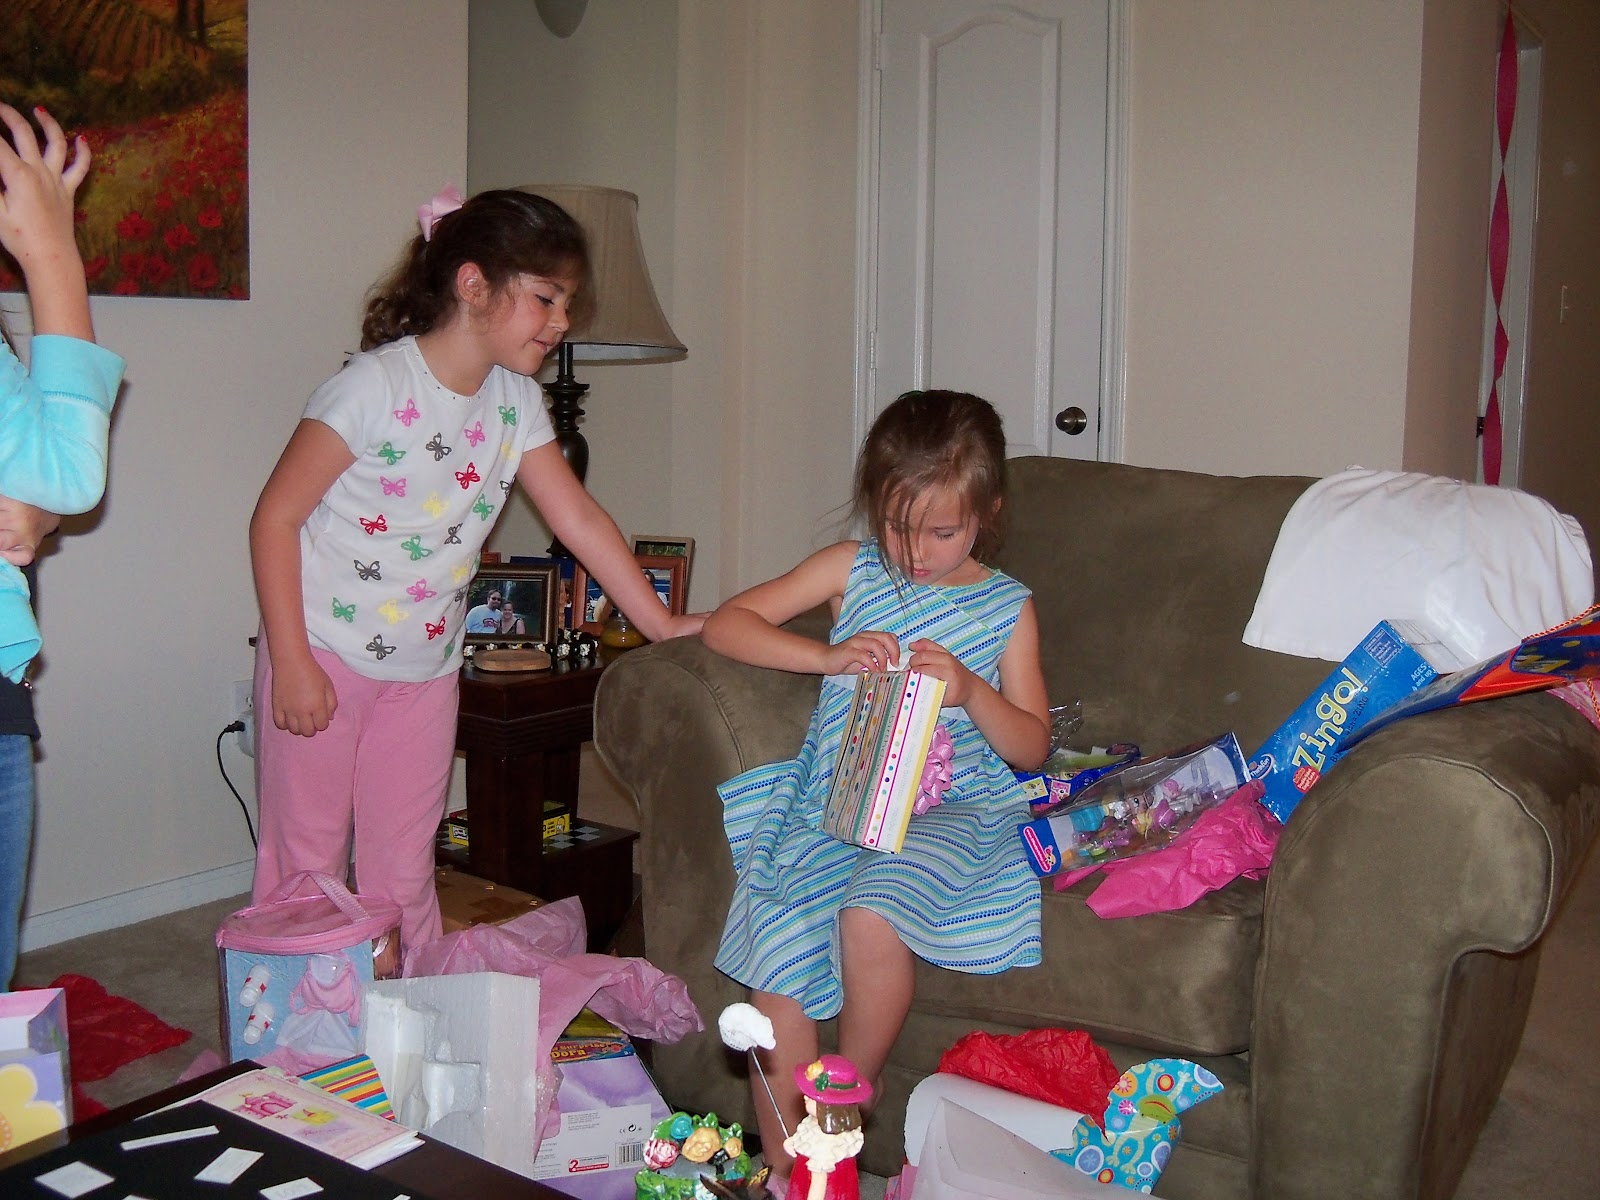 Corinas Birthday Party 2010 - 101_0777.JPG